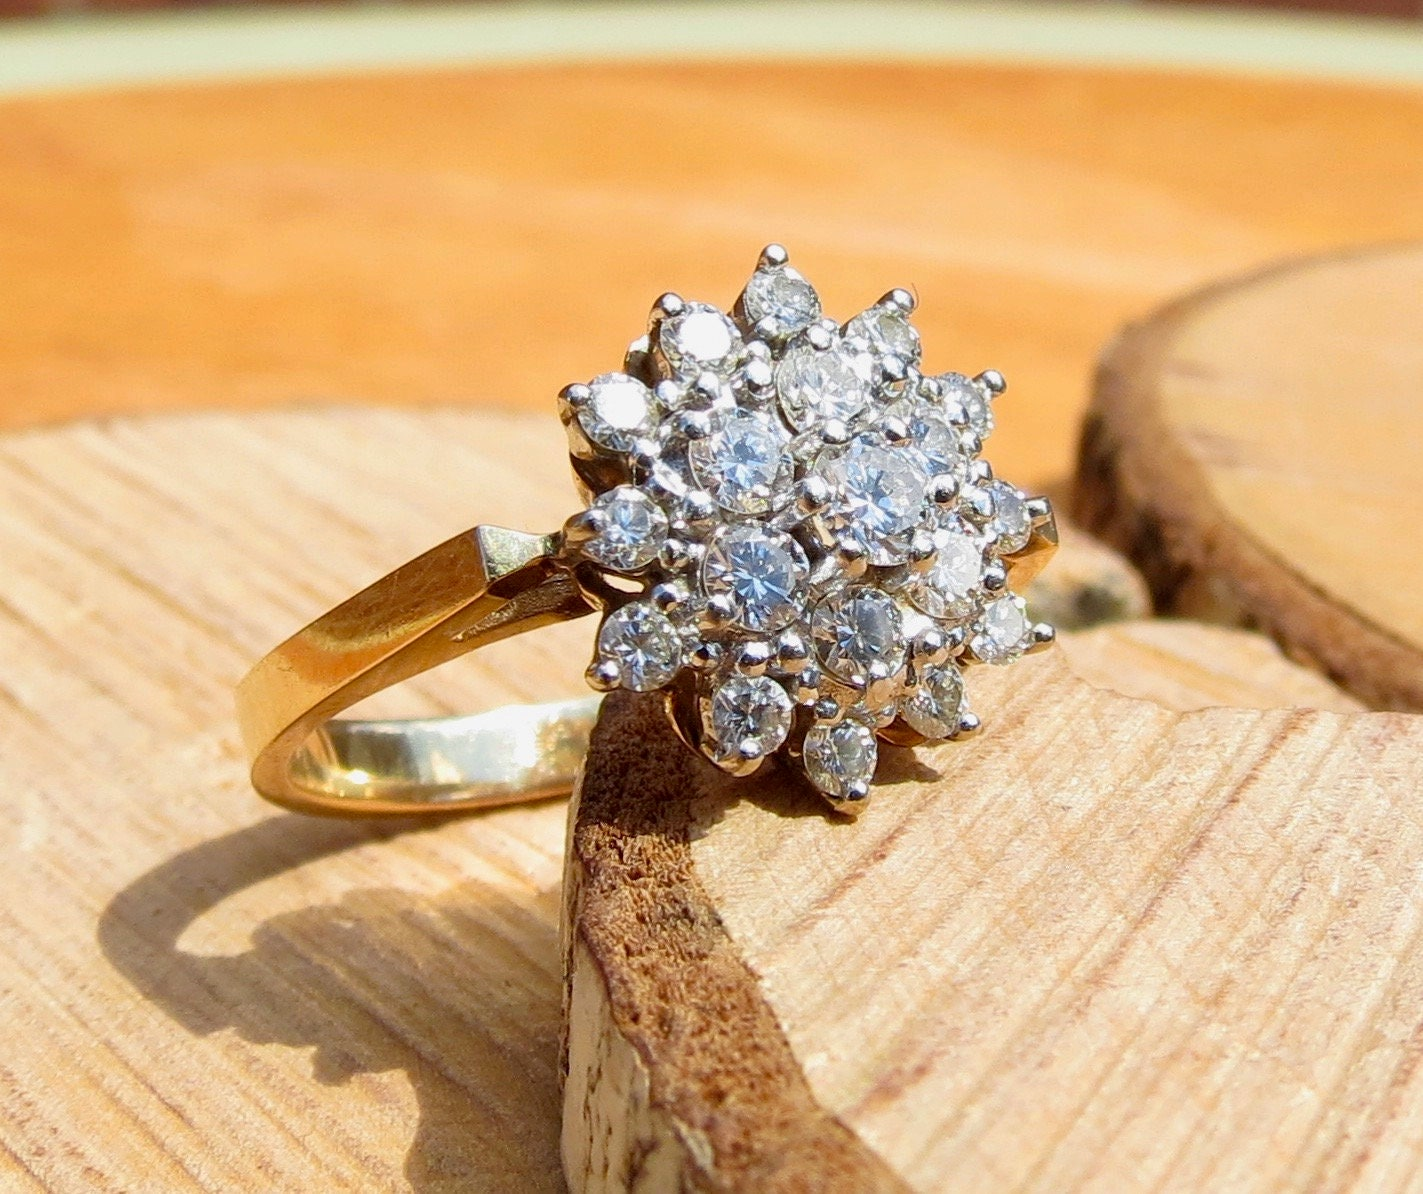 Gold diamond ring A 14k yellow gold 1.35 ct diamond star cluster ring. SOLD to Andrea Layaway 5